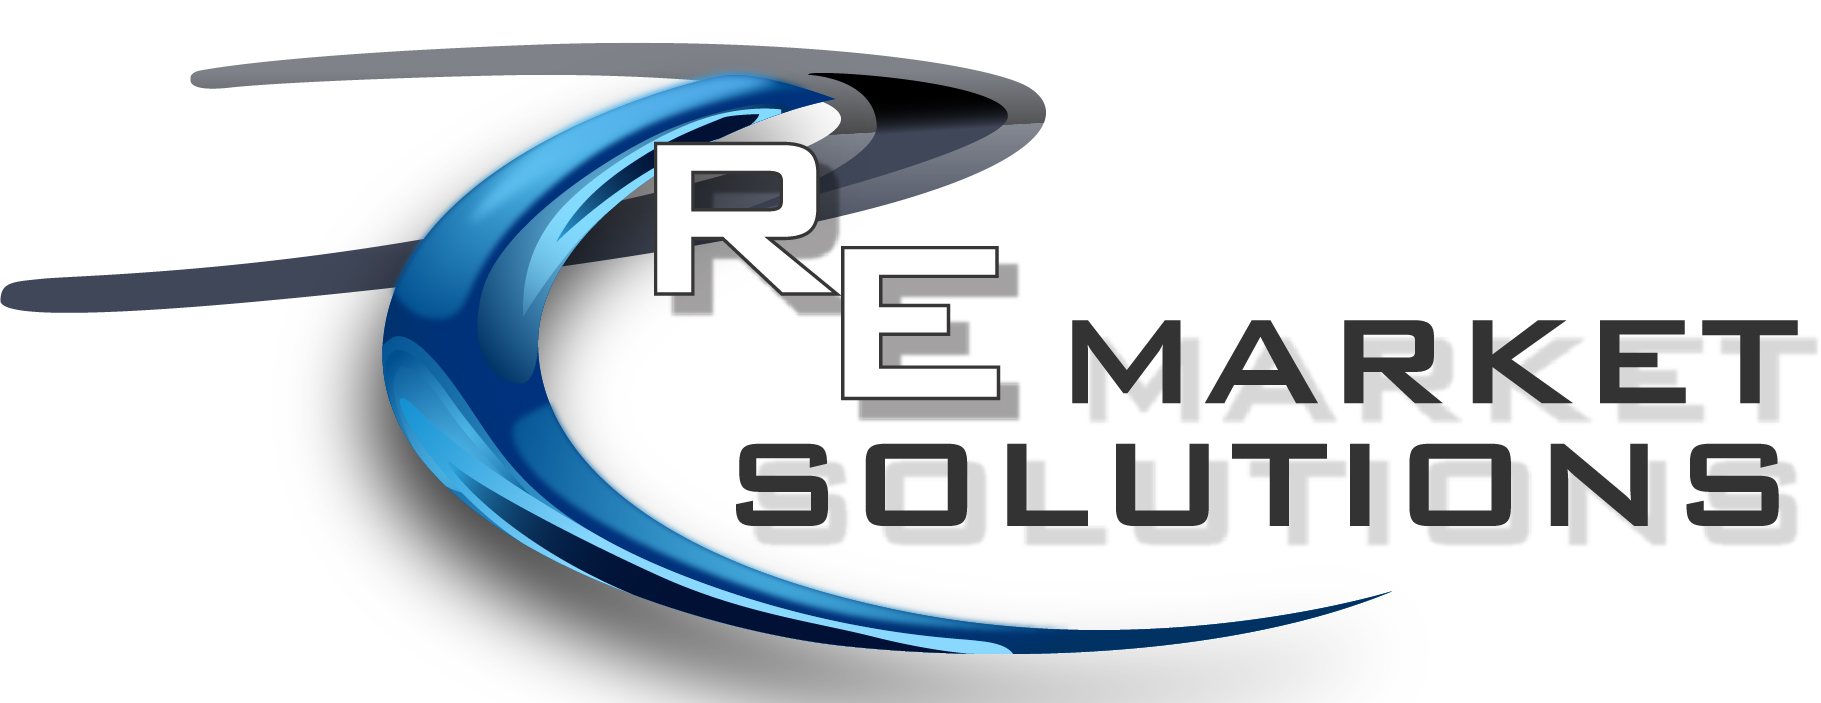 Buy Or Sell SoCal Homes - RE Market Solutions